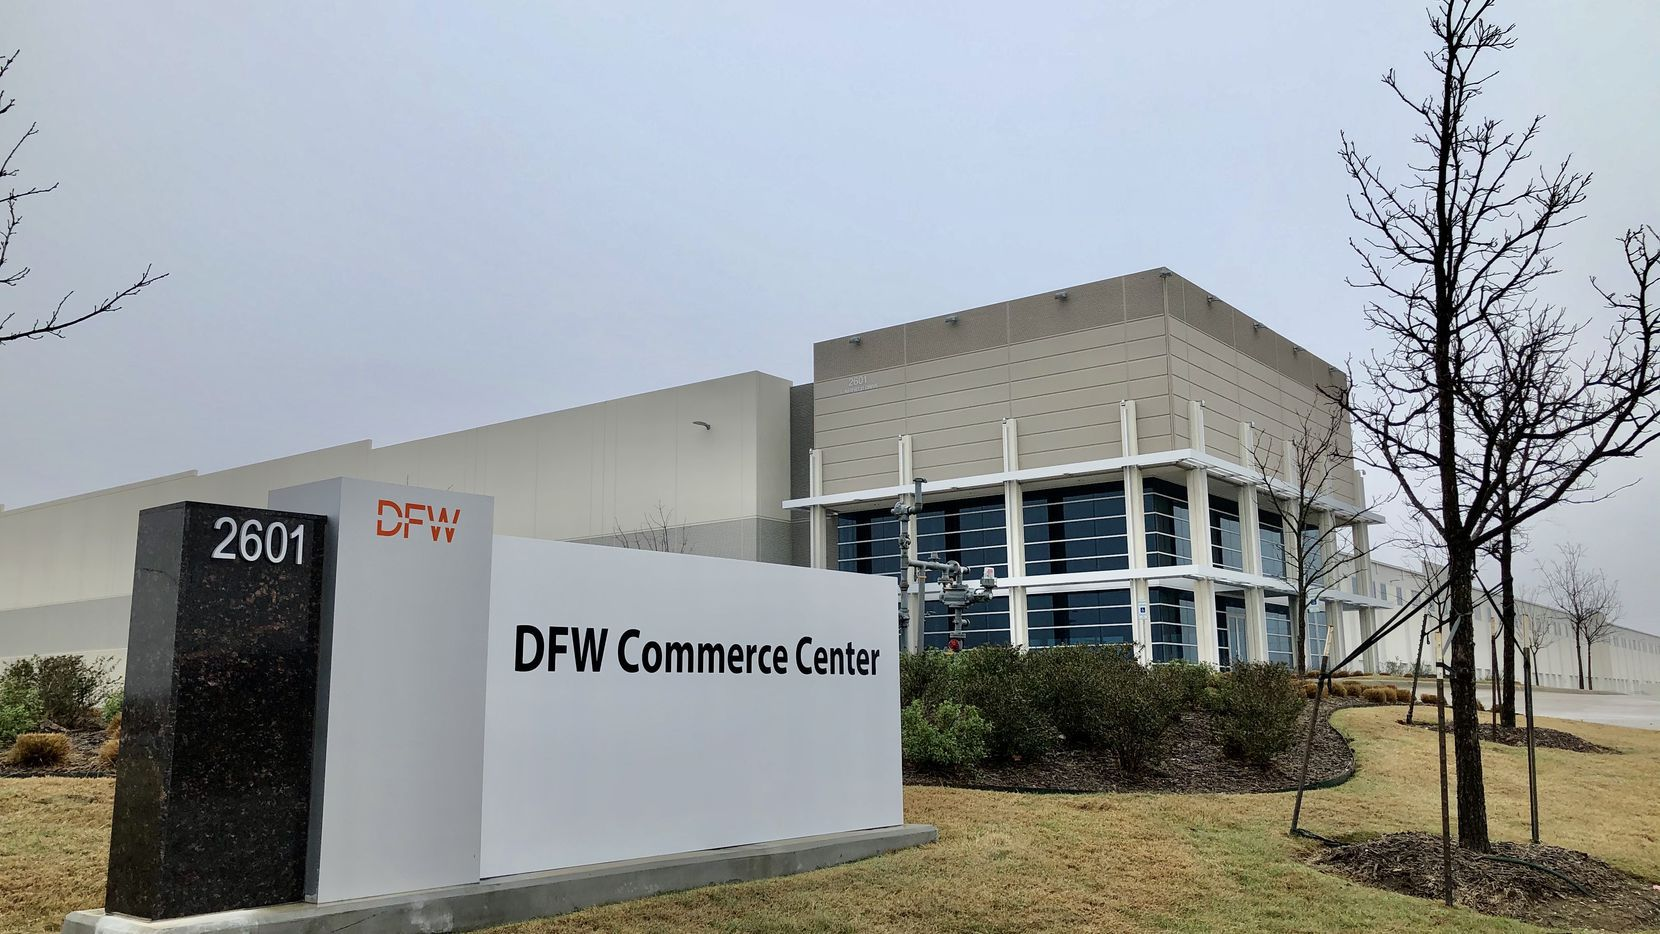 The DFW Commerce Center building is at the southeast corner of DFW International Airport near U.S. Highway 183.